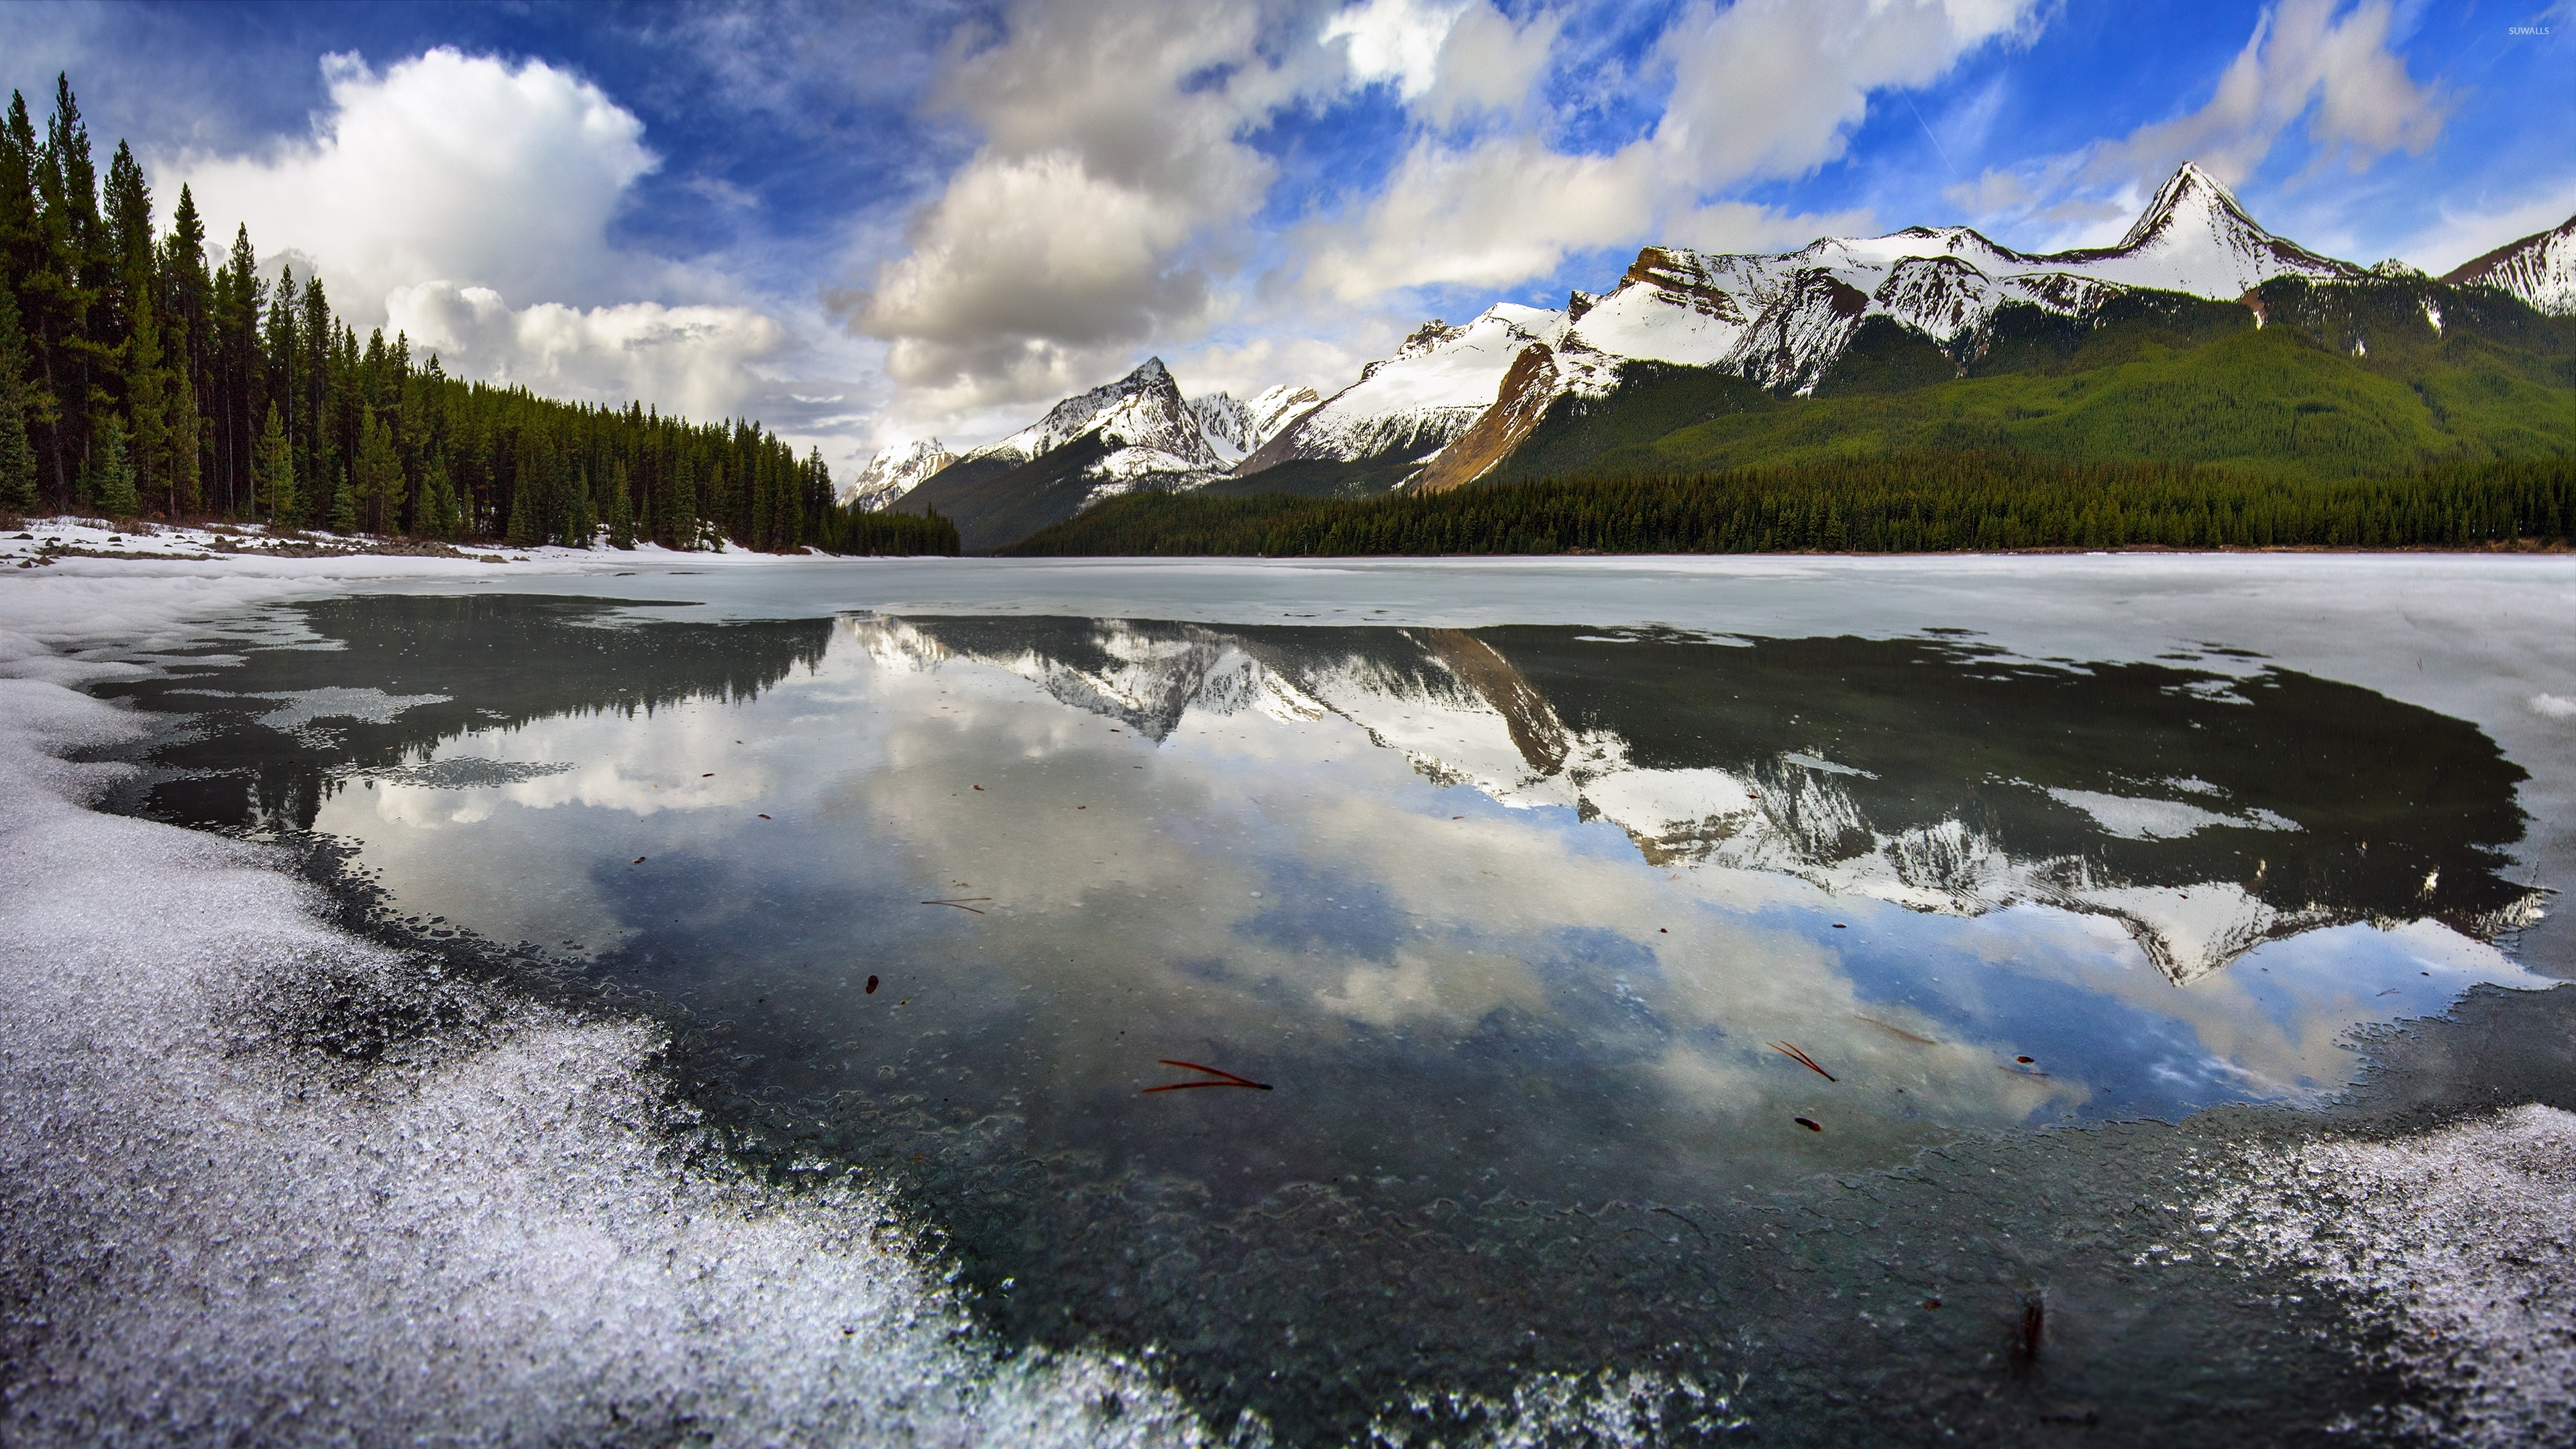 Frozen Mountain Lake Wallpaper - Nature Landscape Oil Painting For Sale , HD Wallpaper & Backgrounds